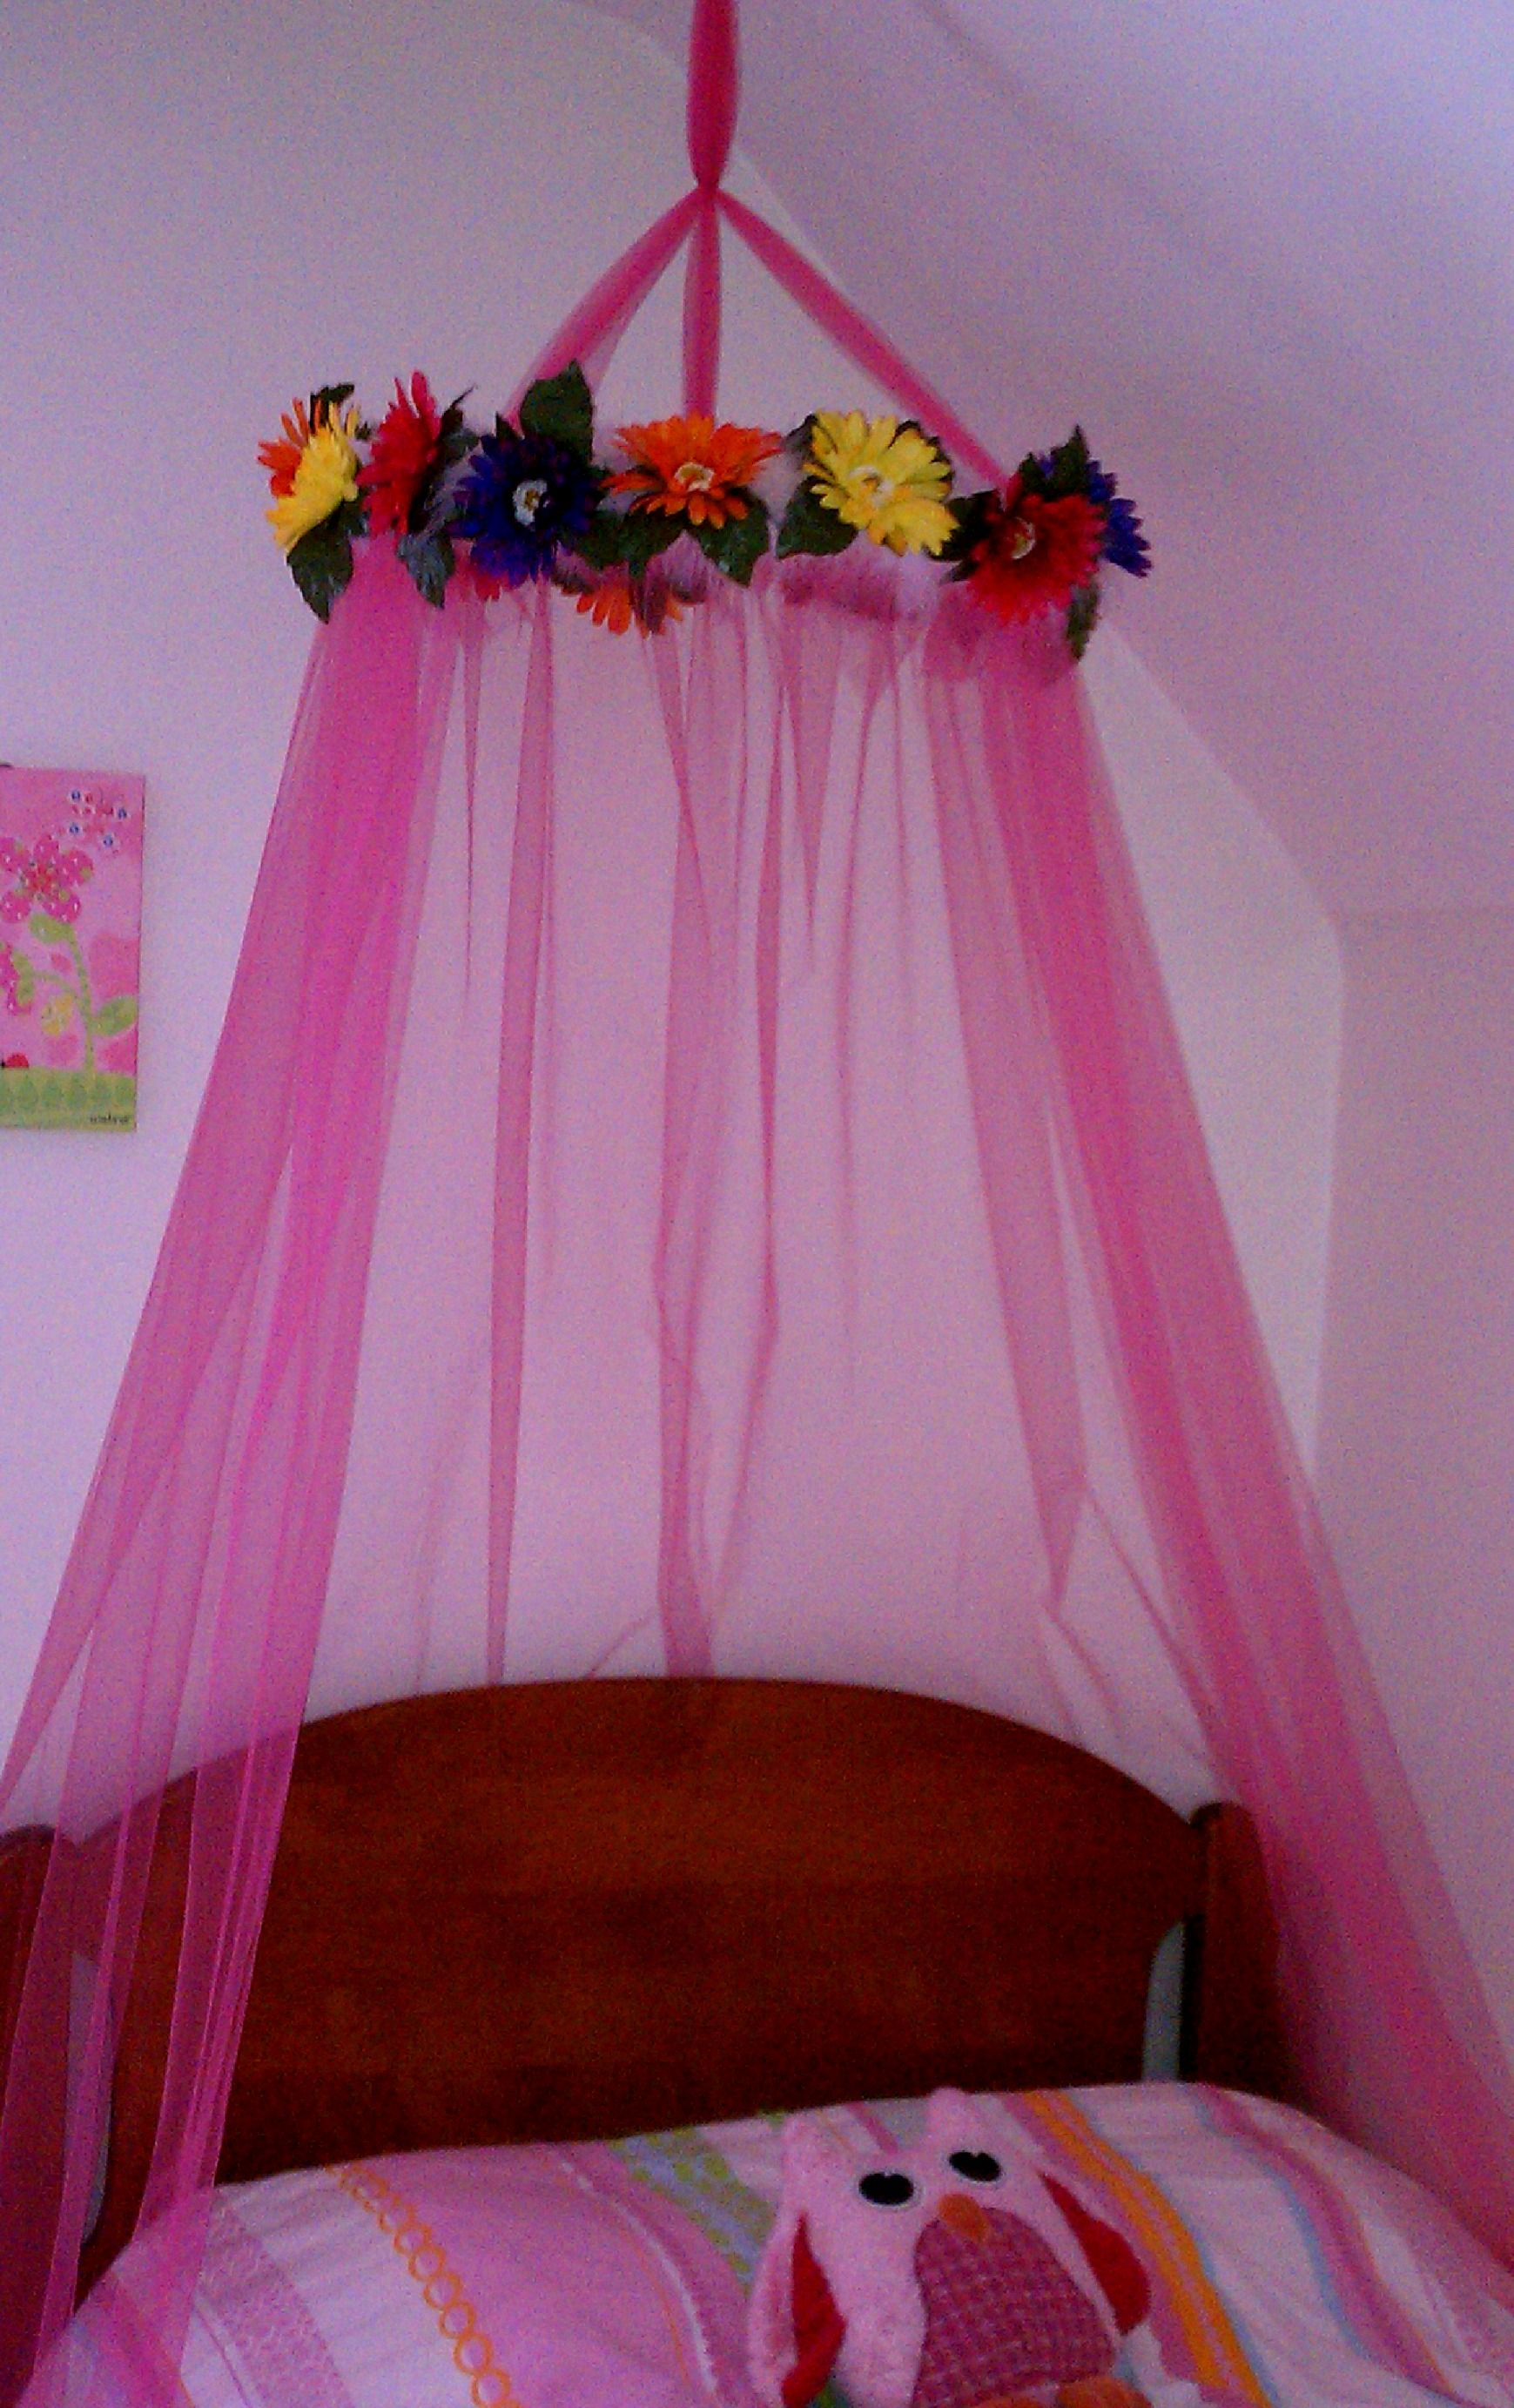 Bed Canopy Made Using Tulle Embroidery Hoop Feather Boa